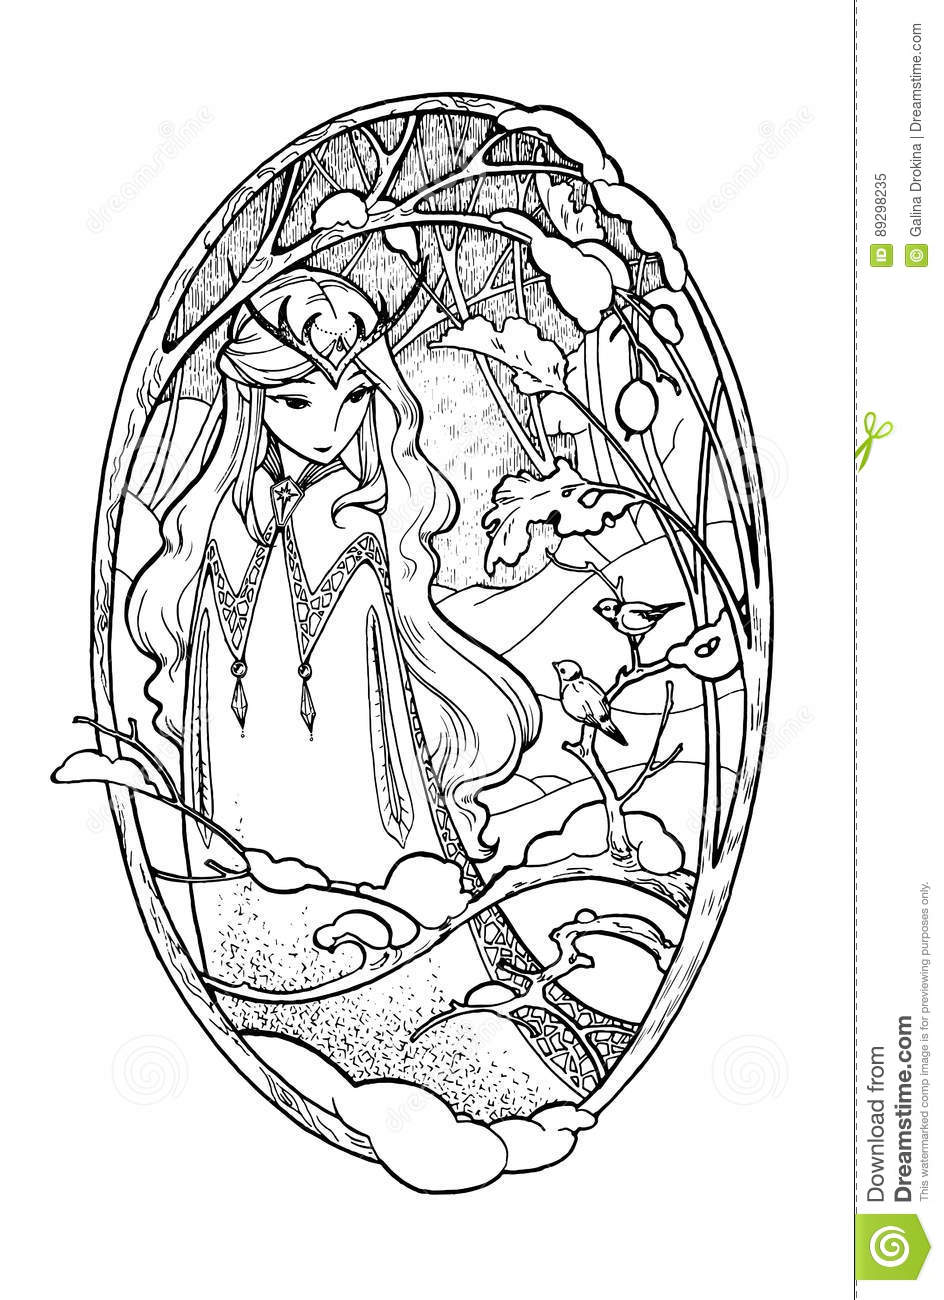 Art Sketch Of Fairy Lady In Winter. Stock Vector - Illustration of ...